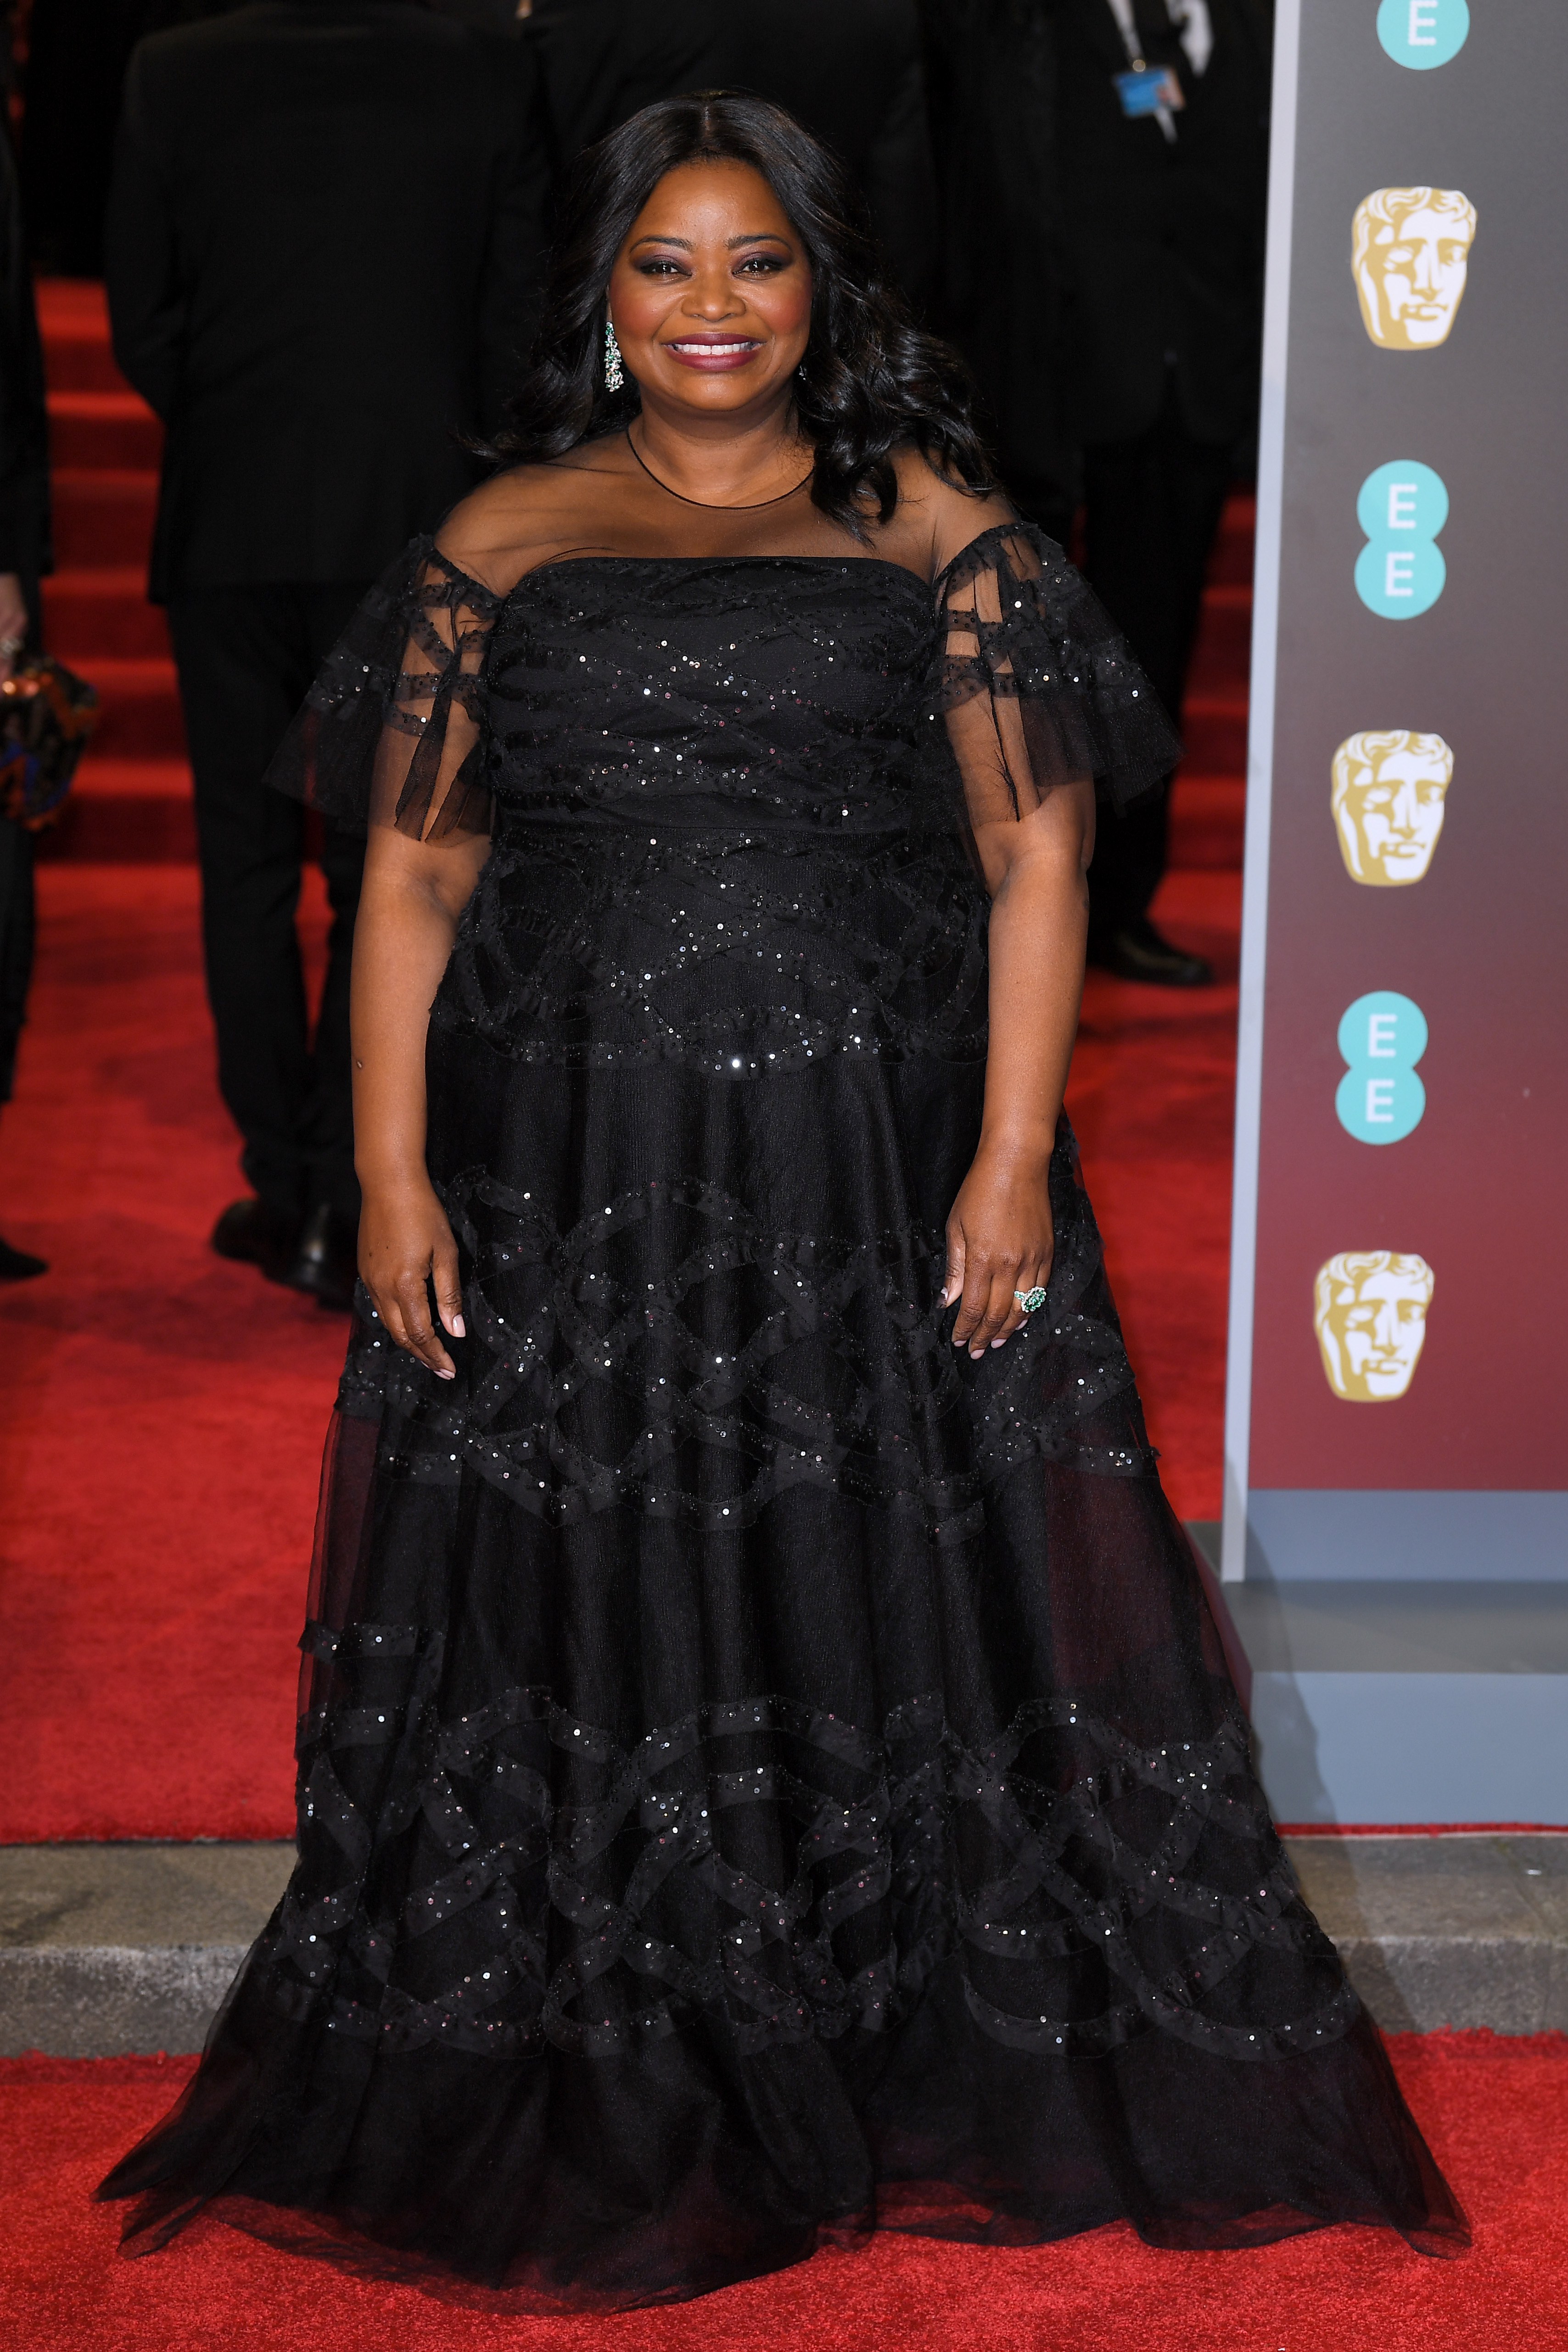 Octavia Spencer arrives at the 71st EE British Academy Film Awards at the Royal Albert Hall in London on Feb. 18, 2018.